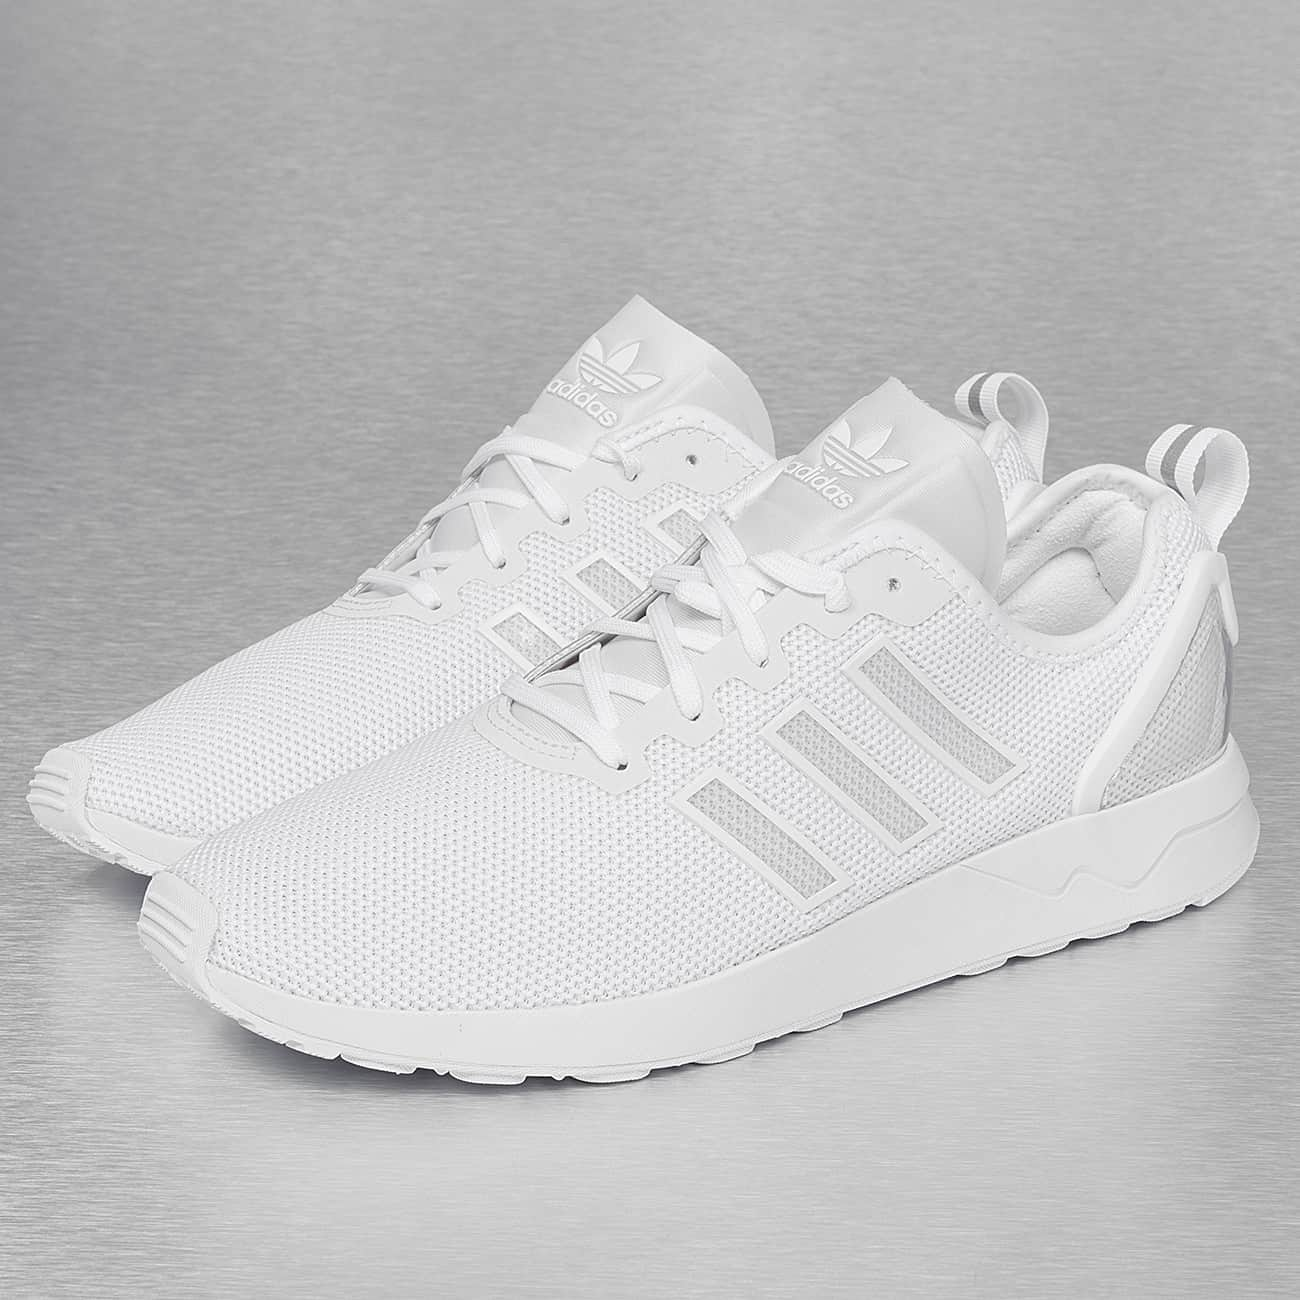 adidas in store coupon